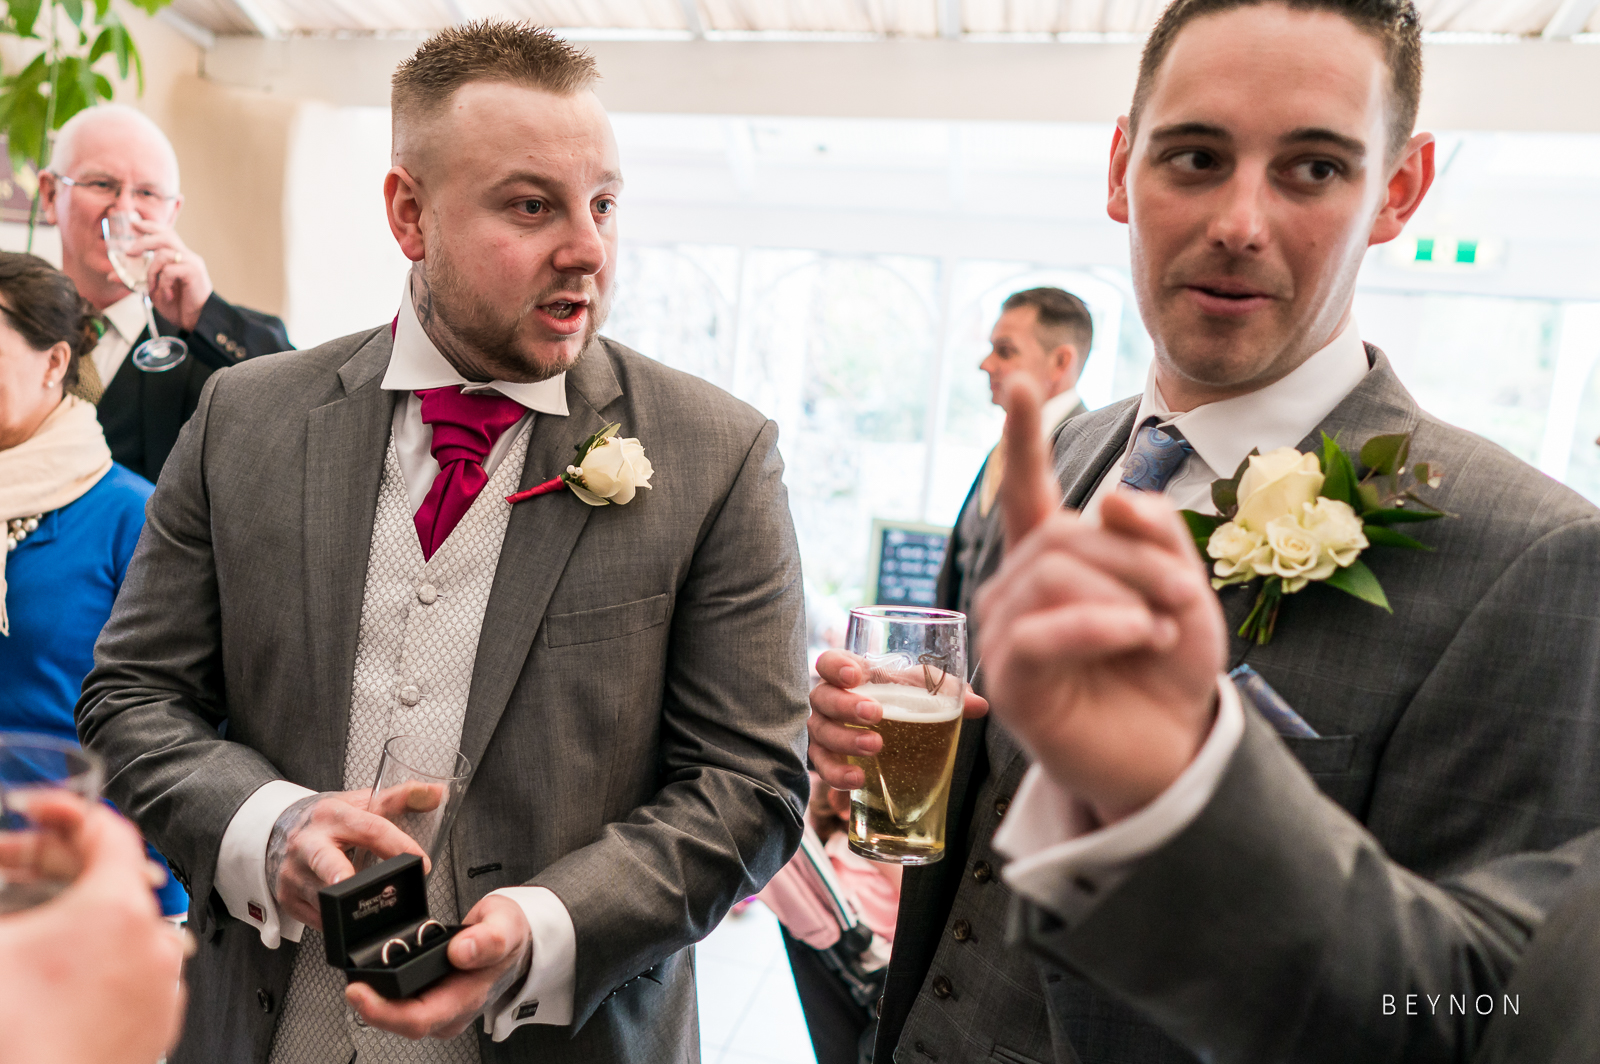 Best Man shows off the wedding rings